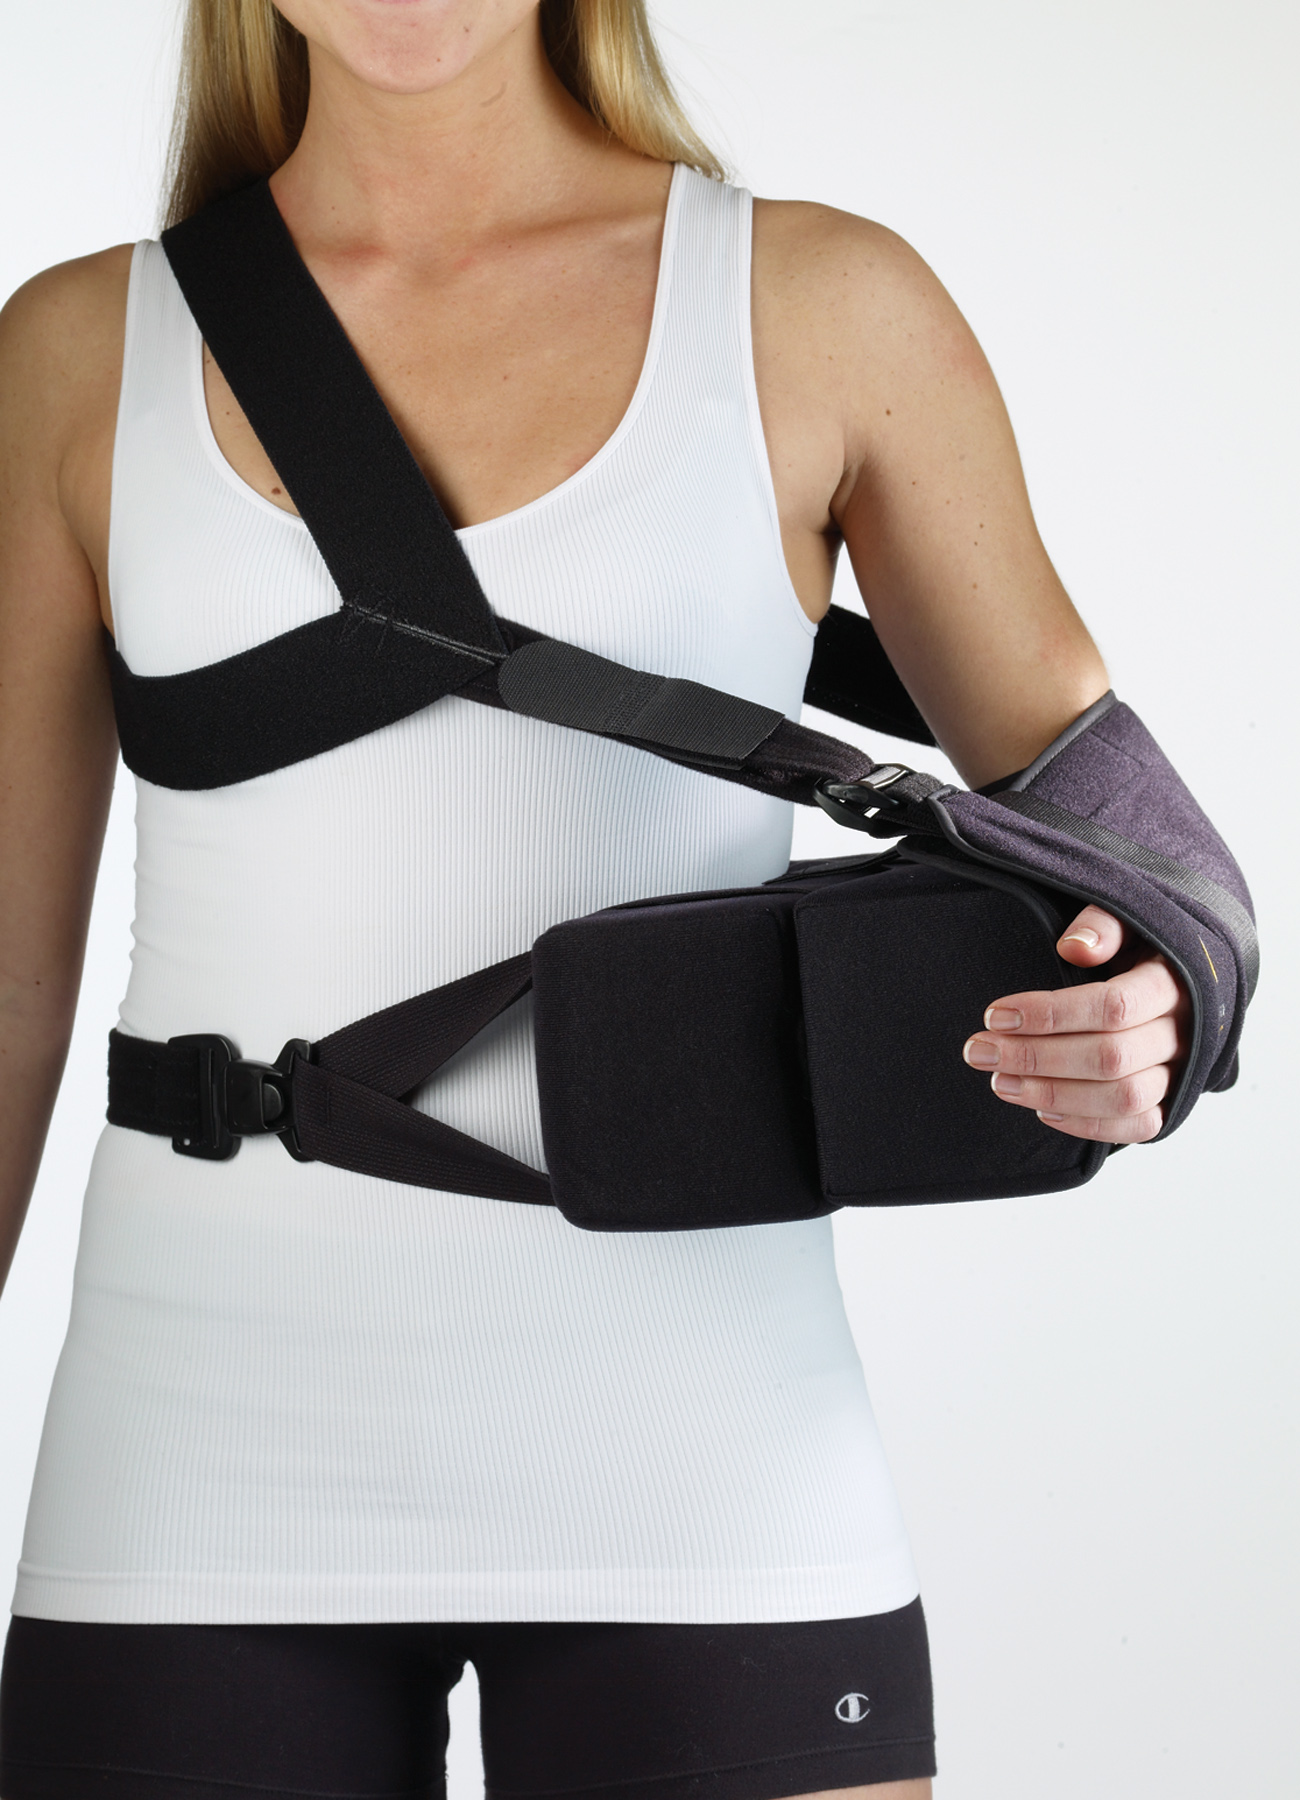 Corflex Inc Shoulder Immobilizers